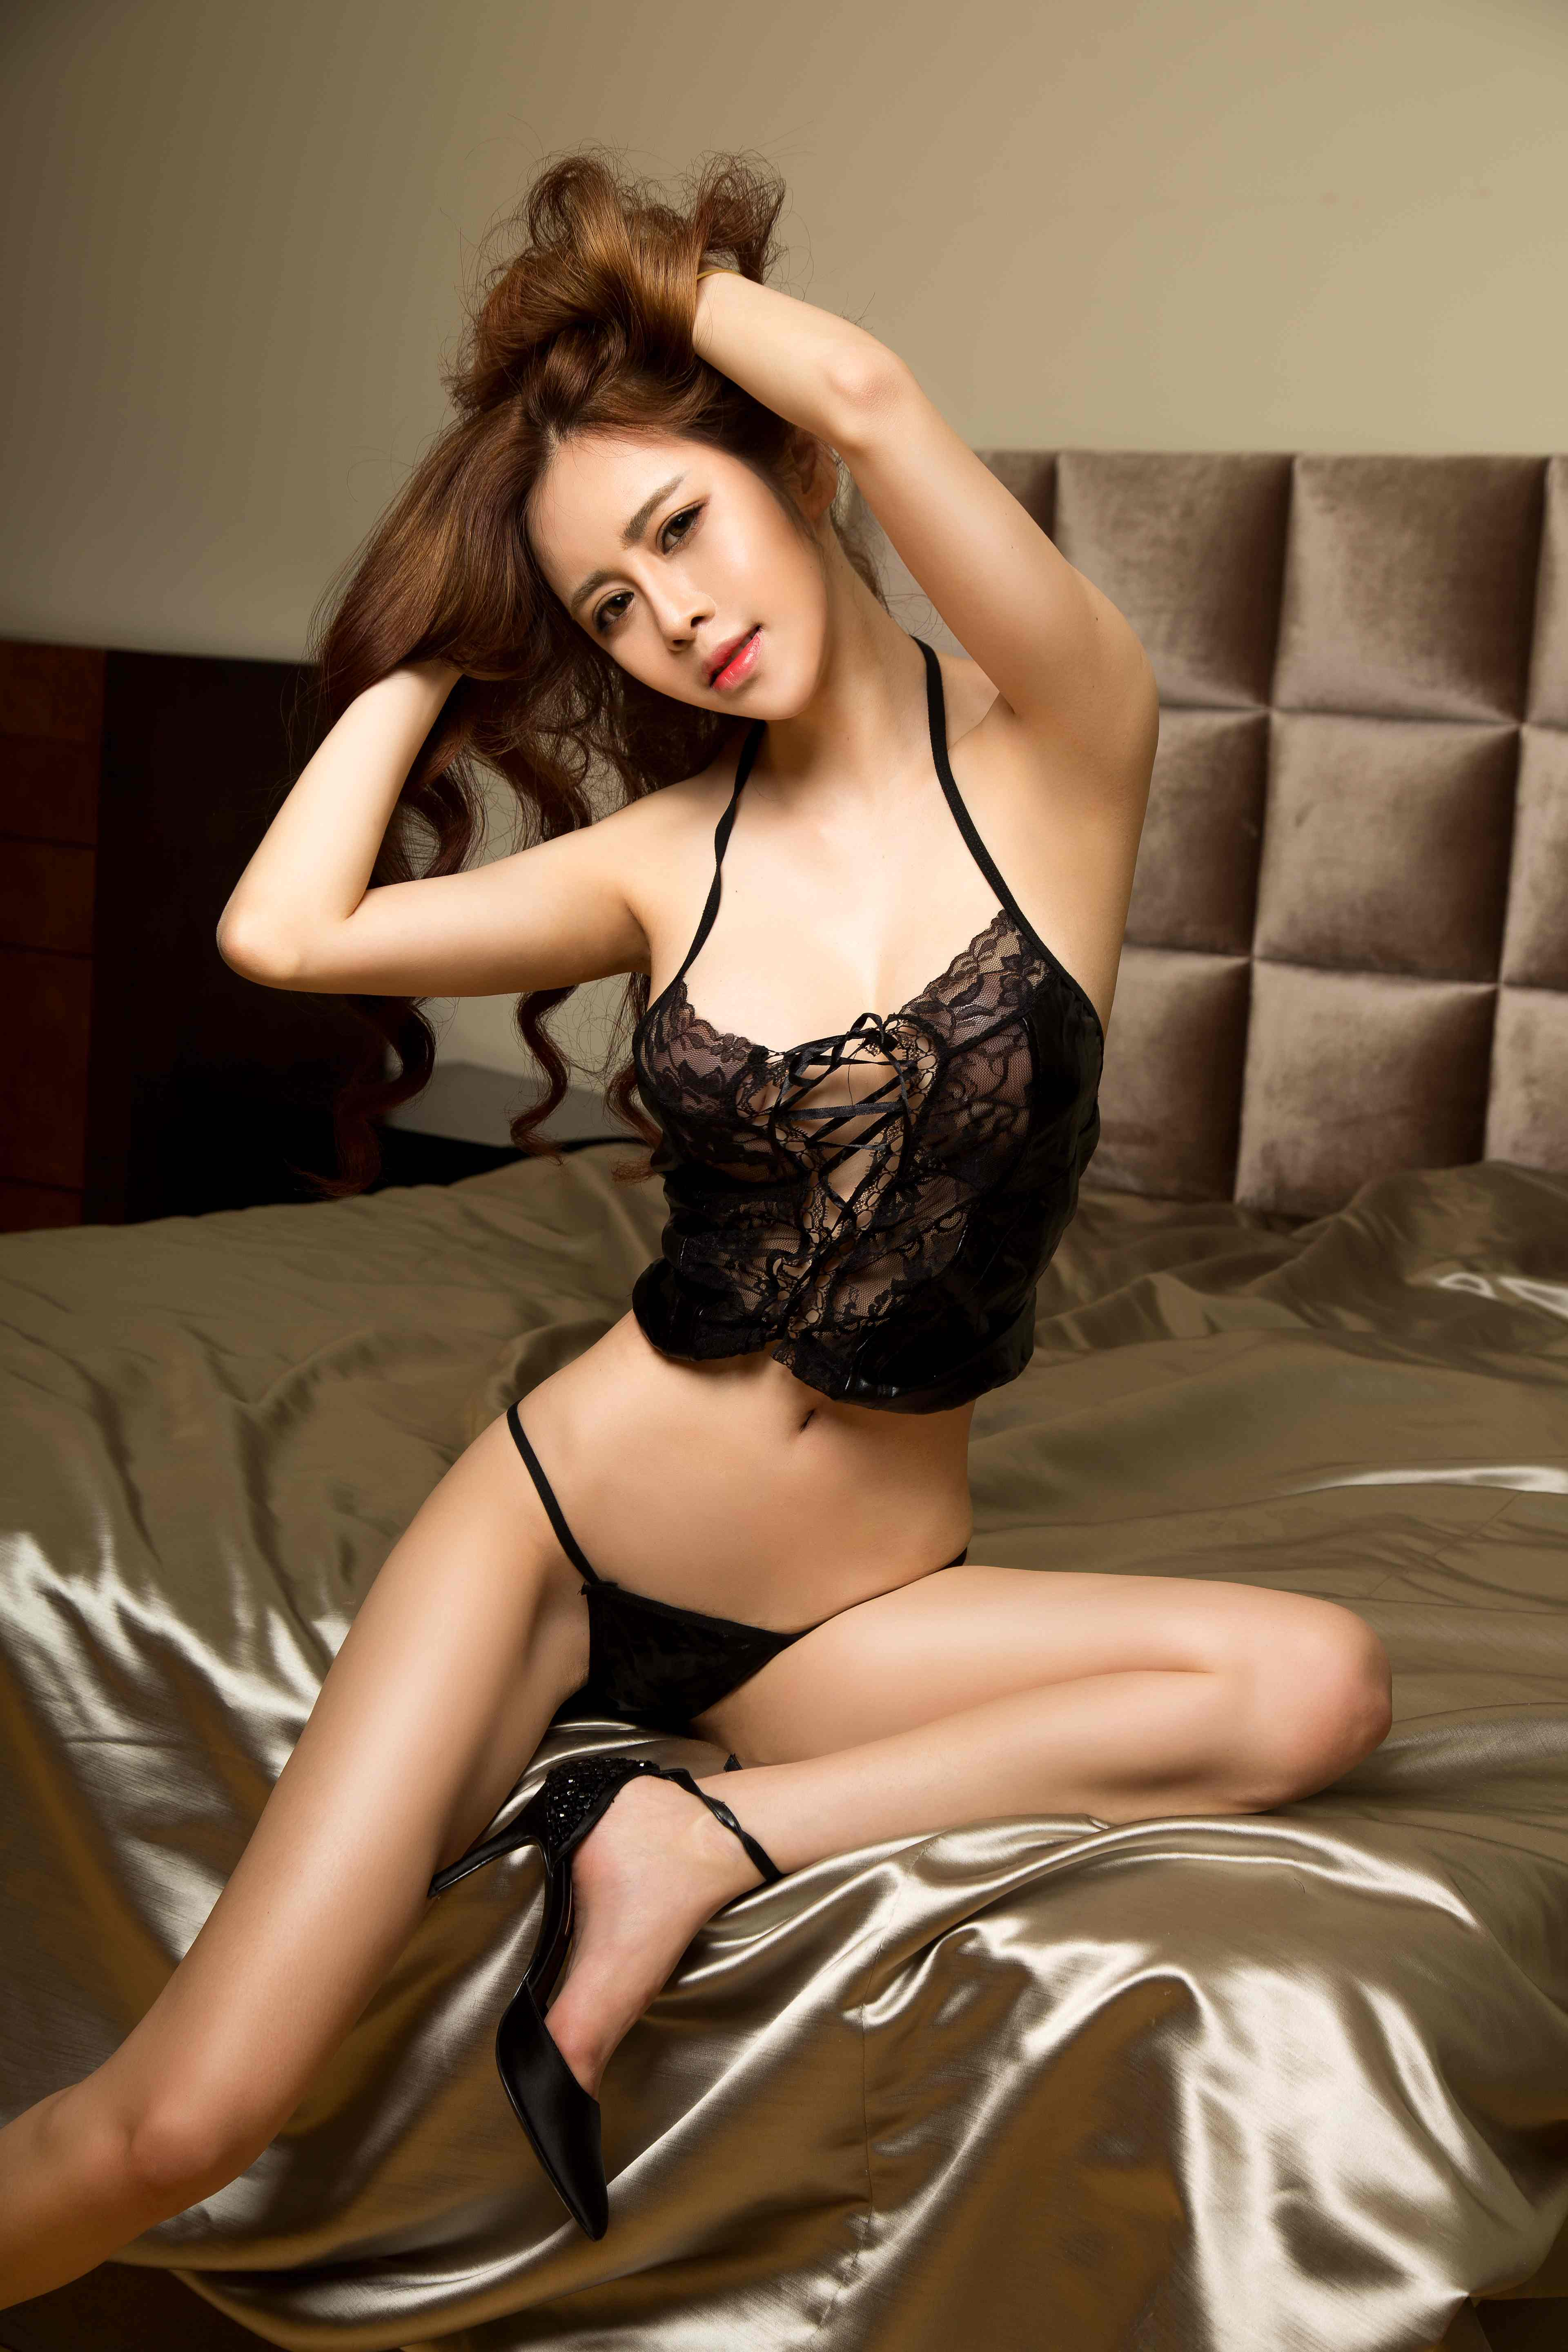 cool Chinese woman in lingerie